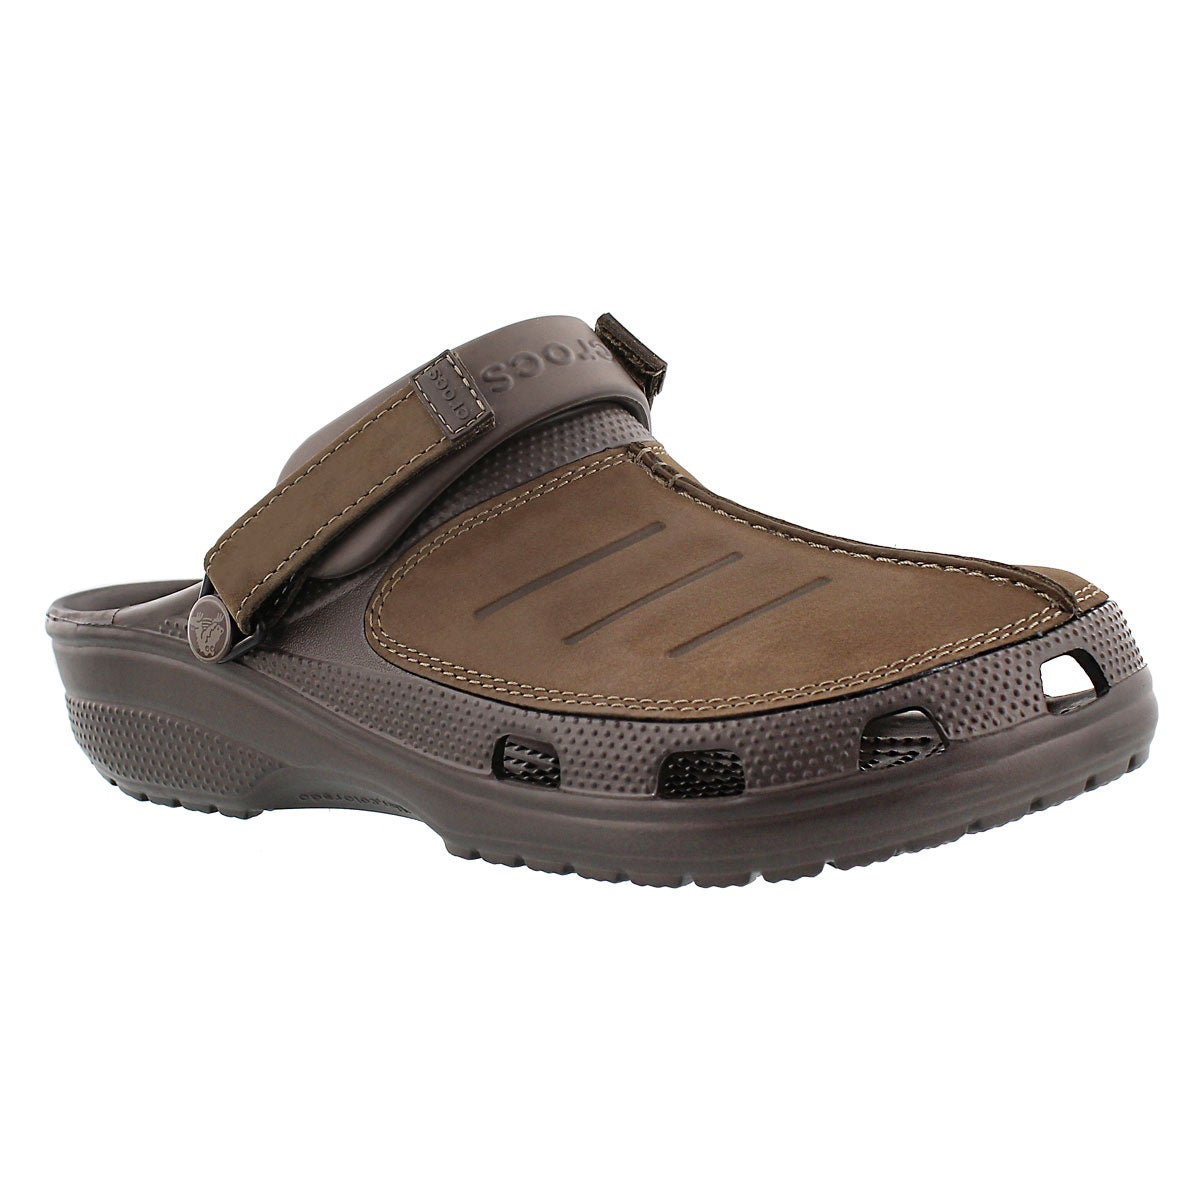 Men's YUKON MESA espresso clogs